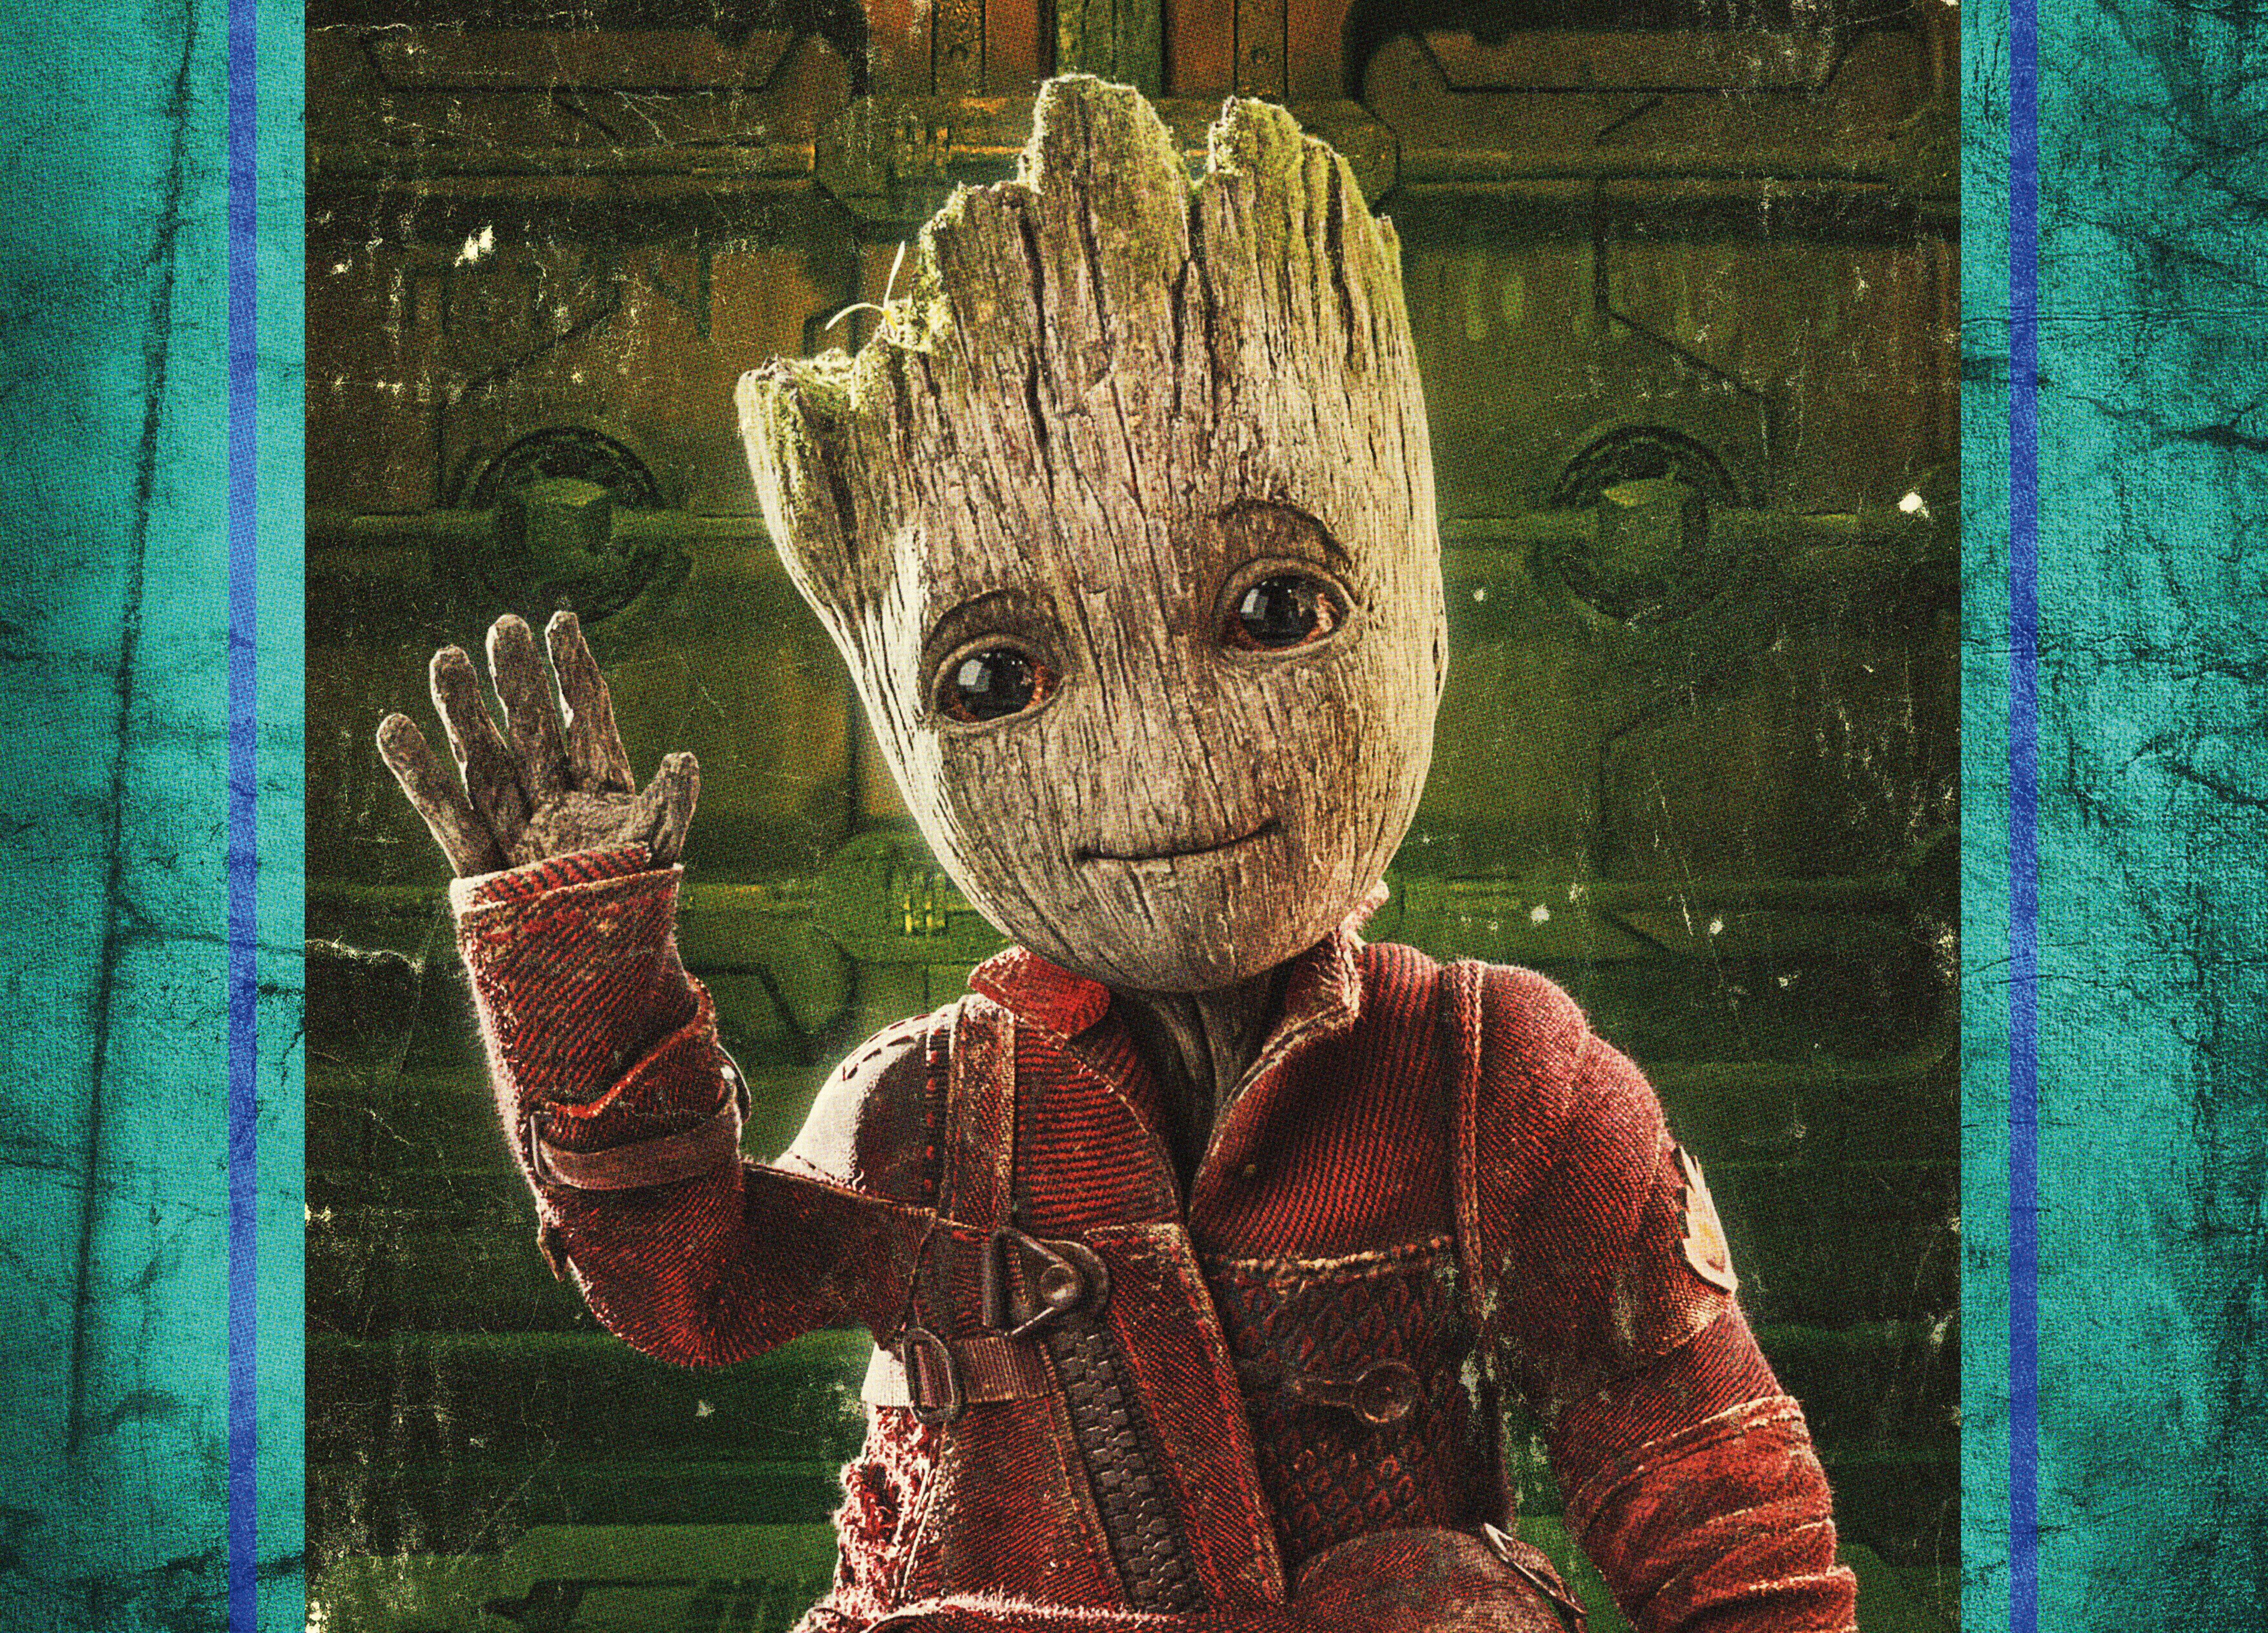 Baby Groot Iphone Wallpaper Baby Groot In Guardians Of The Galaxy